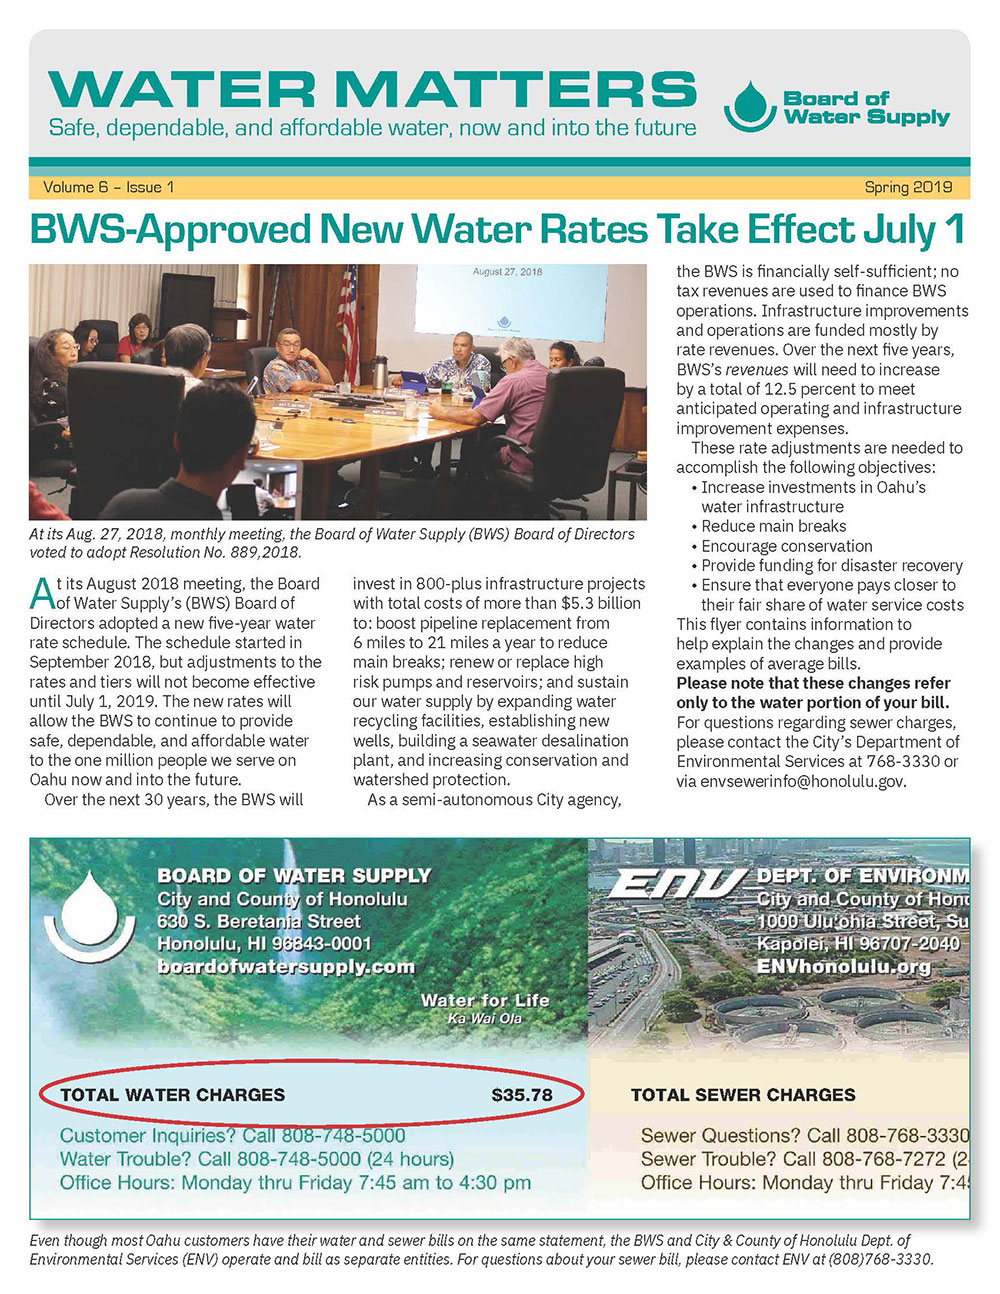 water matters spring 2019